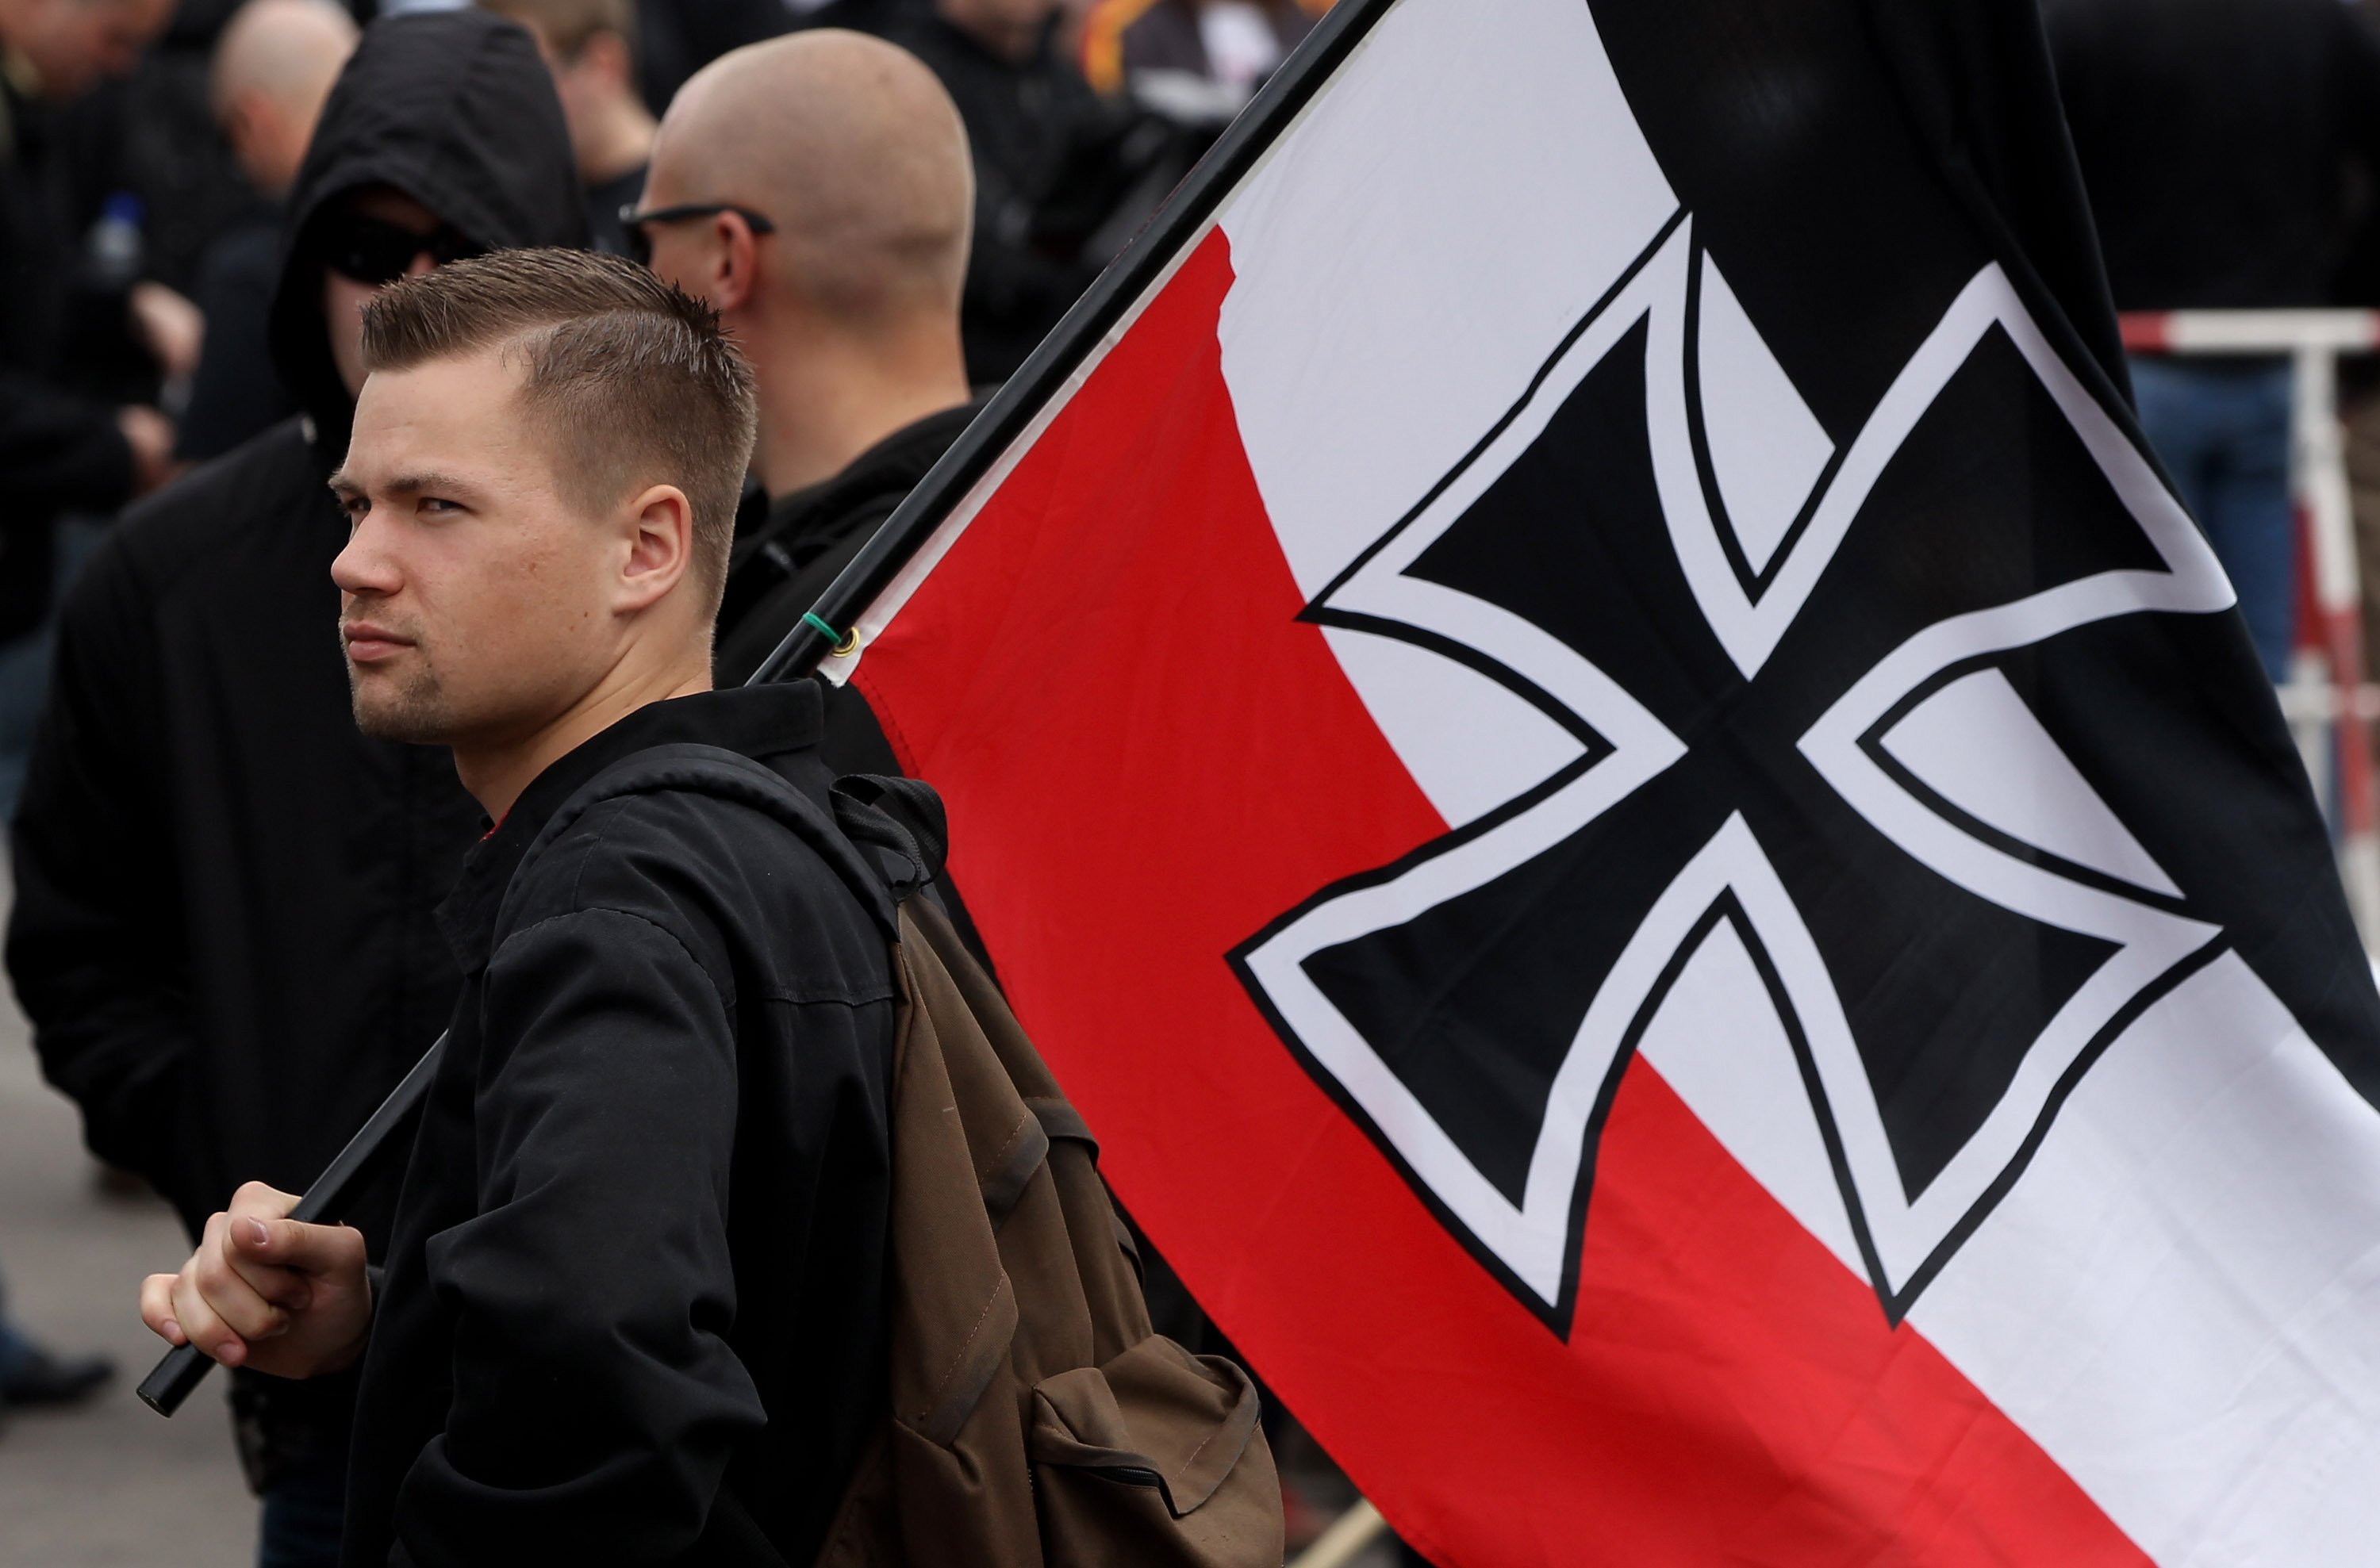 A neo-Nazi supporter arrives bearing colours of the pre-World War I German Empire. (Photo by Sean Gallup/Getty Images)